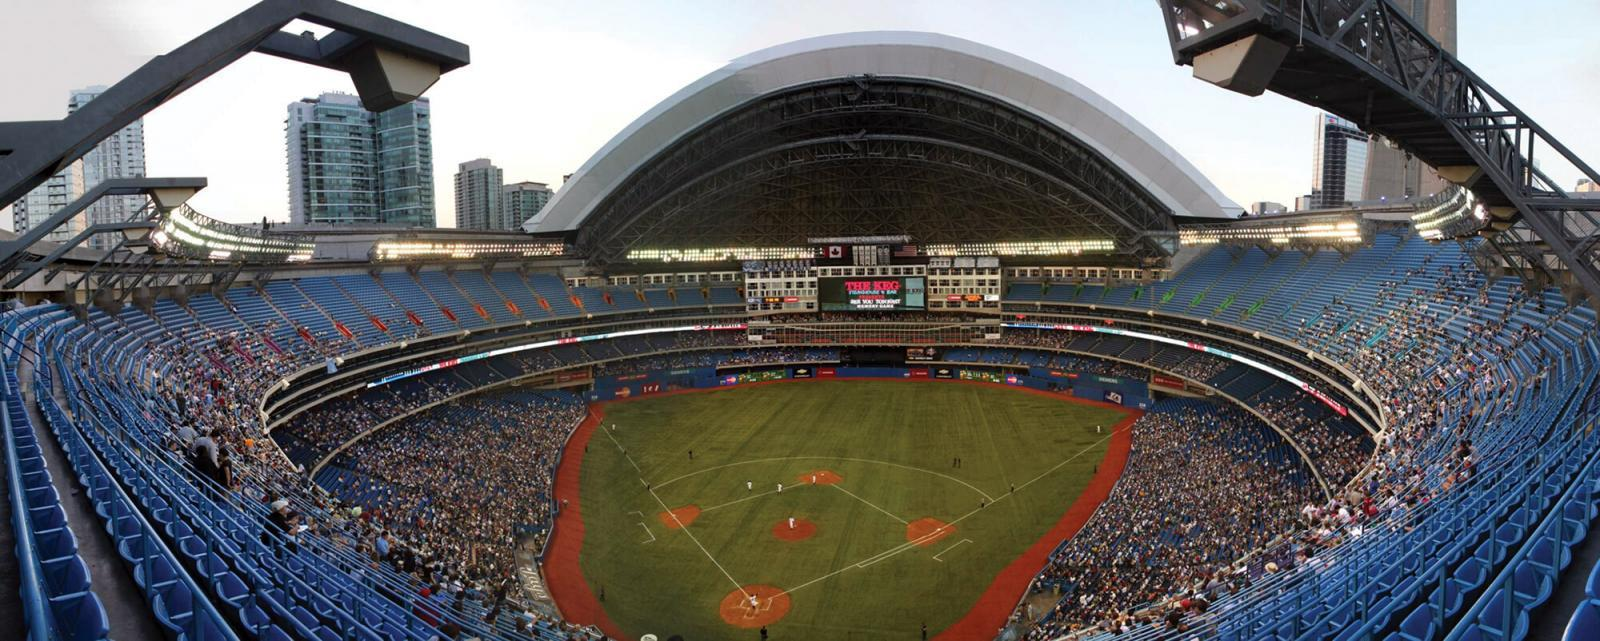 University of Guelph is working to bring real turf to the home of Toronto Blue Jays, Rogers Centre.